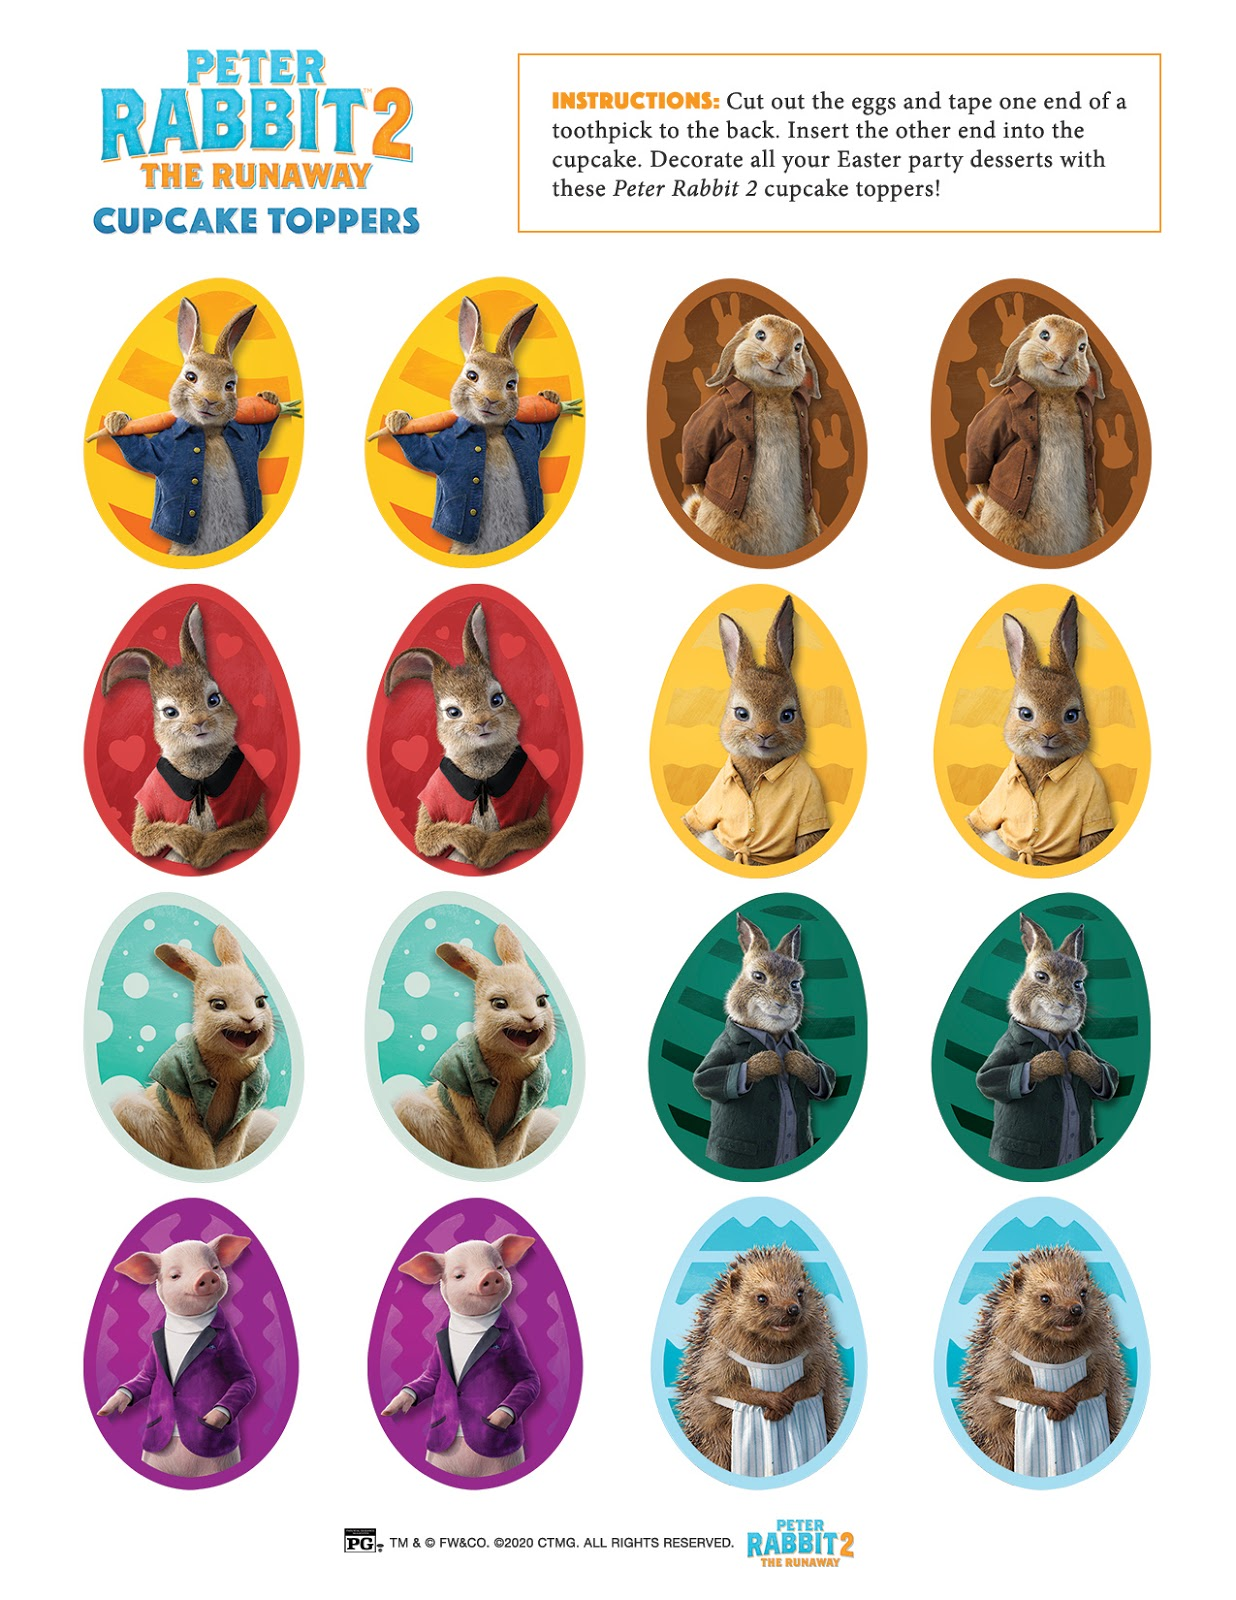 Peter Rabbit 2 Cupcake Toppers